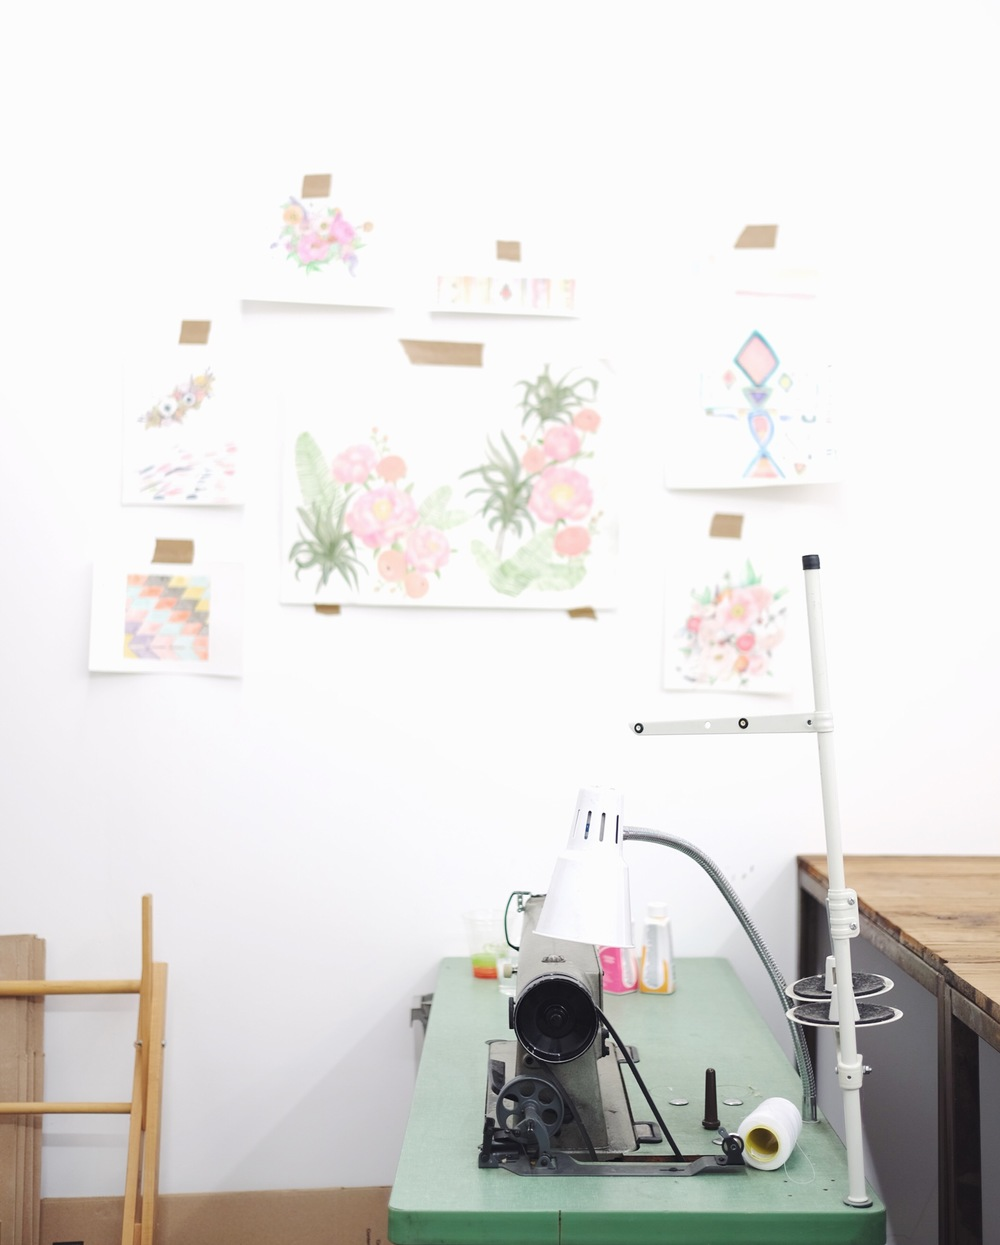 Samantha Santana's Workspace